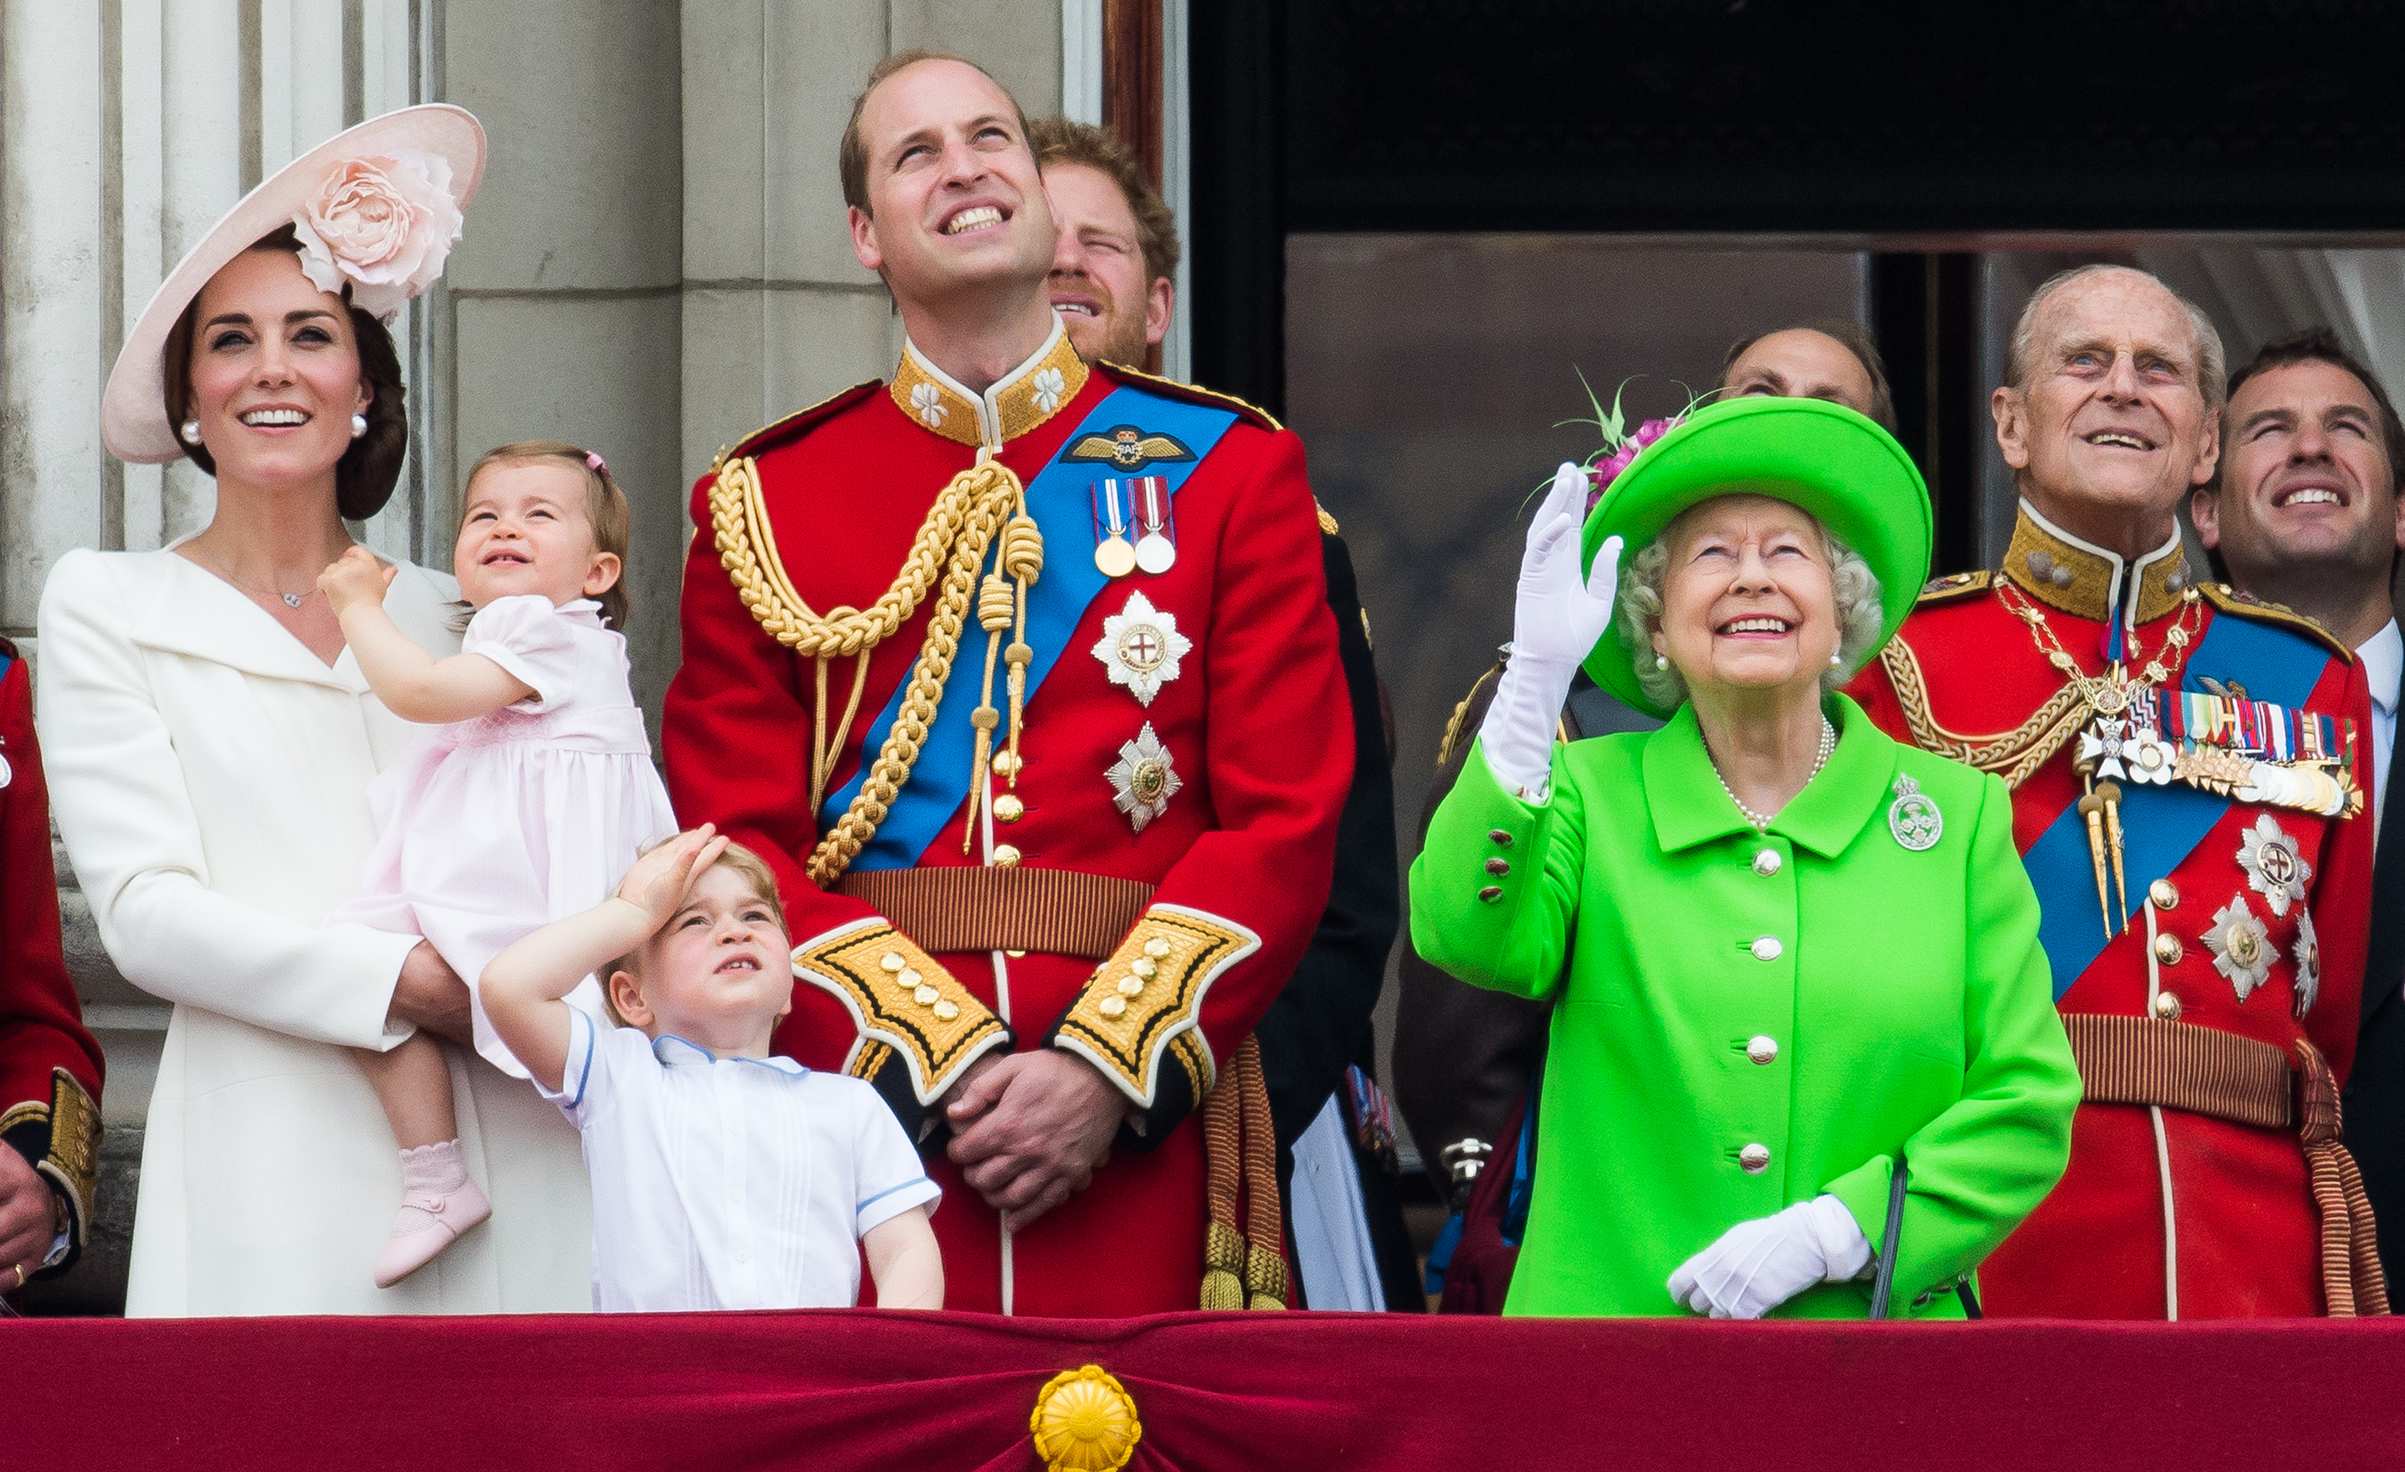 Catherine, Duchess of Cambridge, Princess Charlotte, Prince George, Prince William, Duke of Cambridge, Queen Elizabeth II and Prince Philip, Duke of Edinburgh, stand on the balcony during the Trooping the Colour, this year marking the Queen's official 90th birthday at The Mall in London on June 11, 2016 in London, England. The ceremony is the Queen's annual birthday parade.